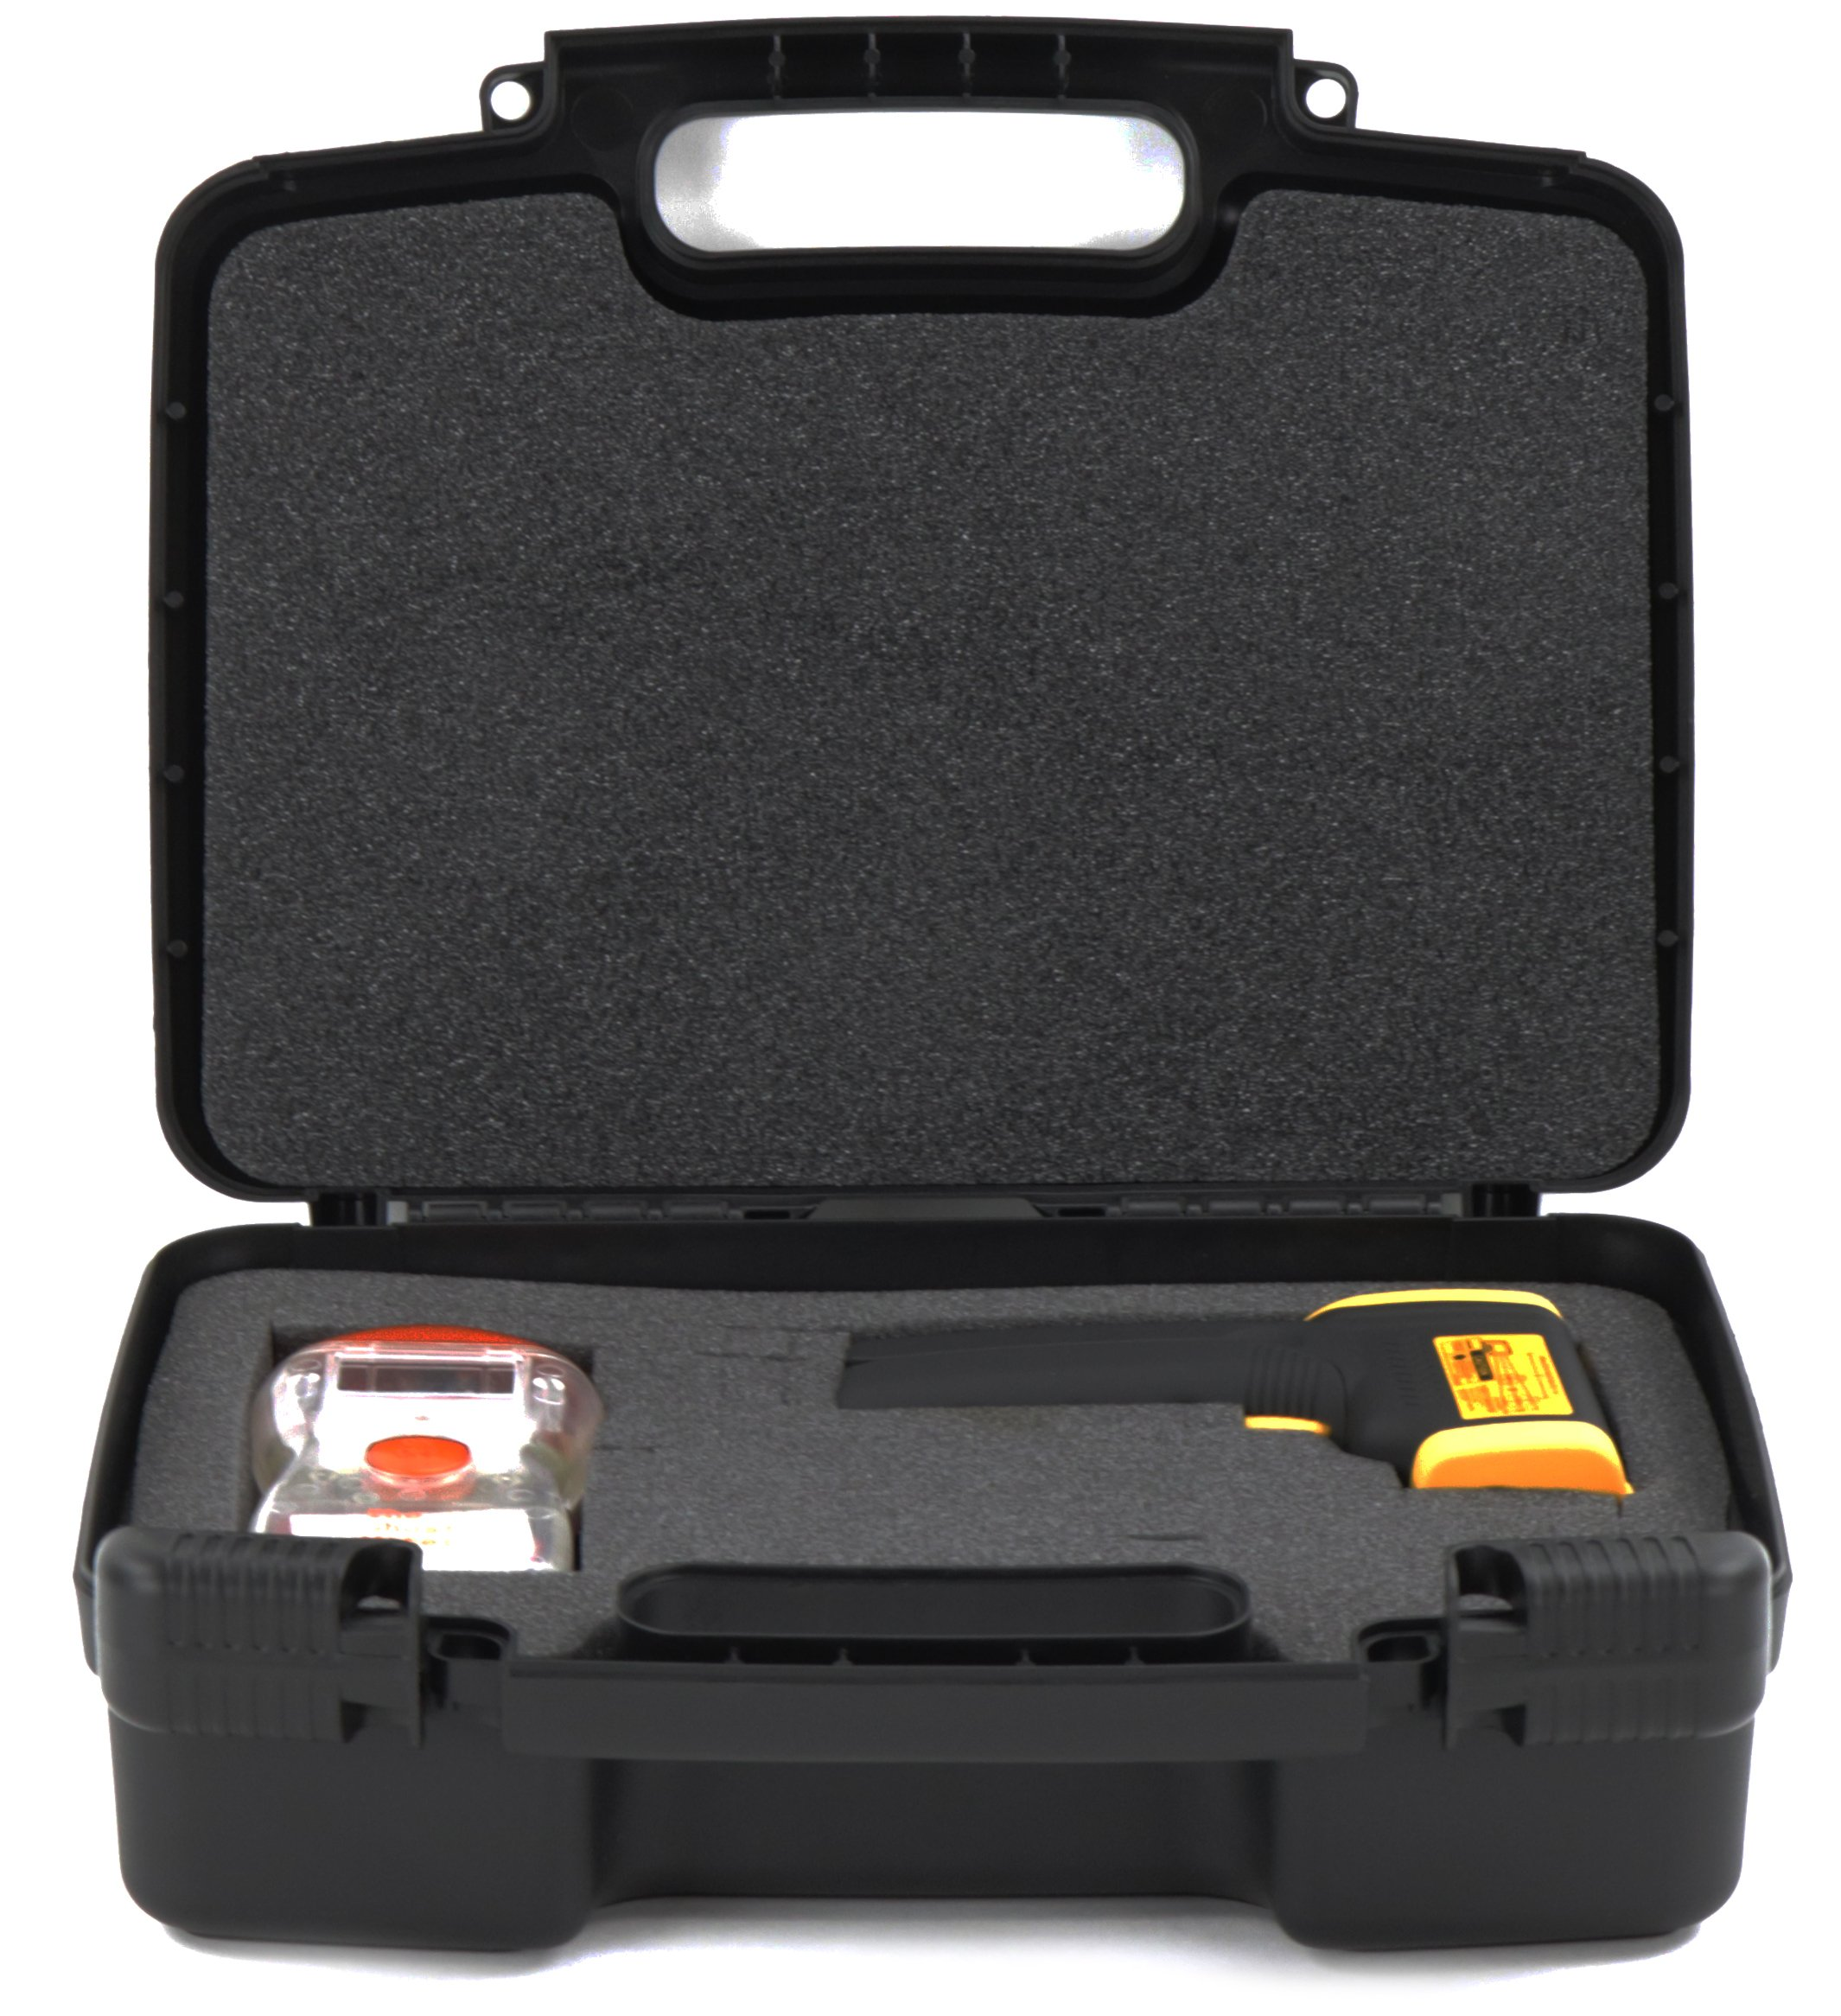 Hard Storage Carrying Case For Ghost Hunting Equipment and Fits The Ghost Meter EMF Sensor, HQMaster, Technology Alternatives, Electromagnetic Radiation Detector EMF Meter Tester and Accessories